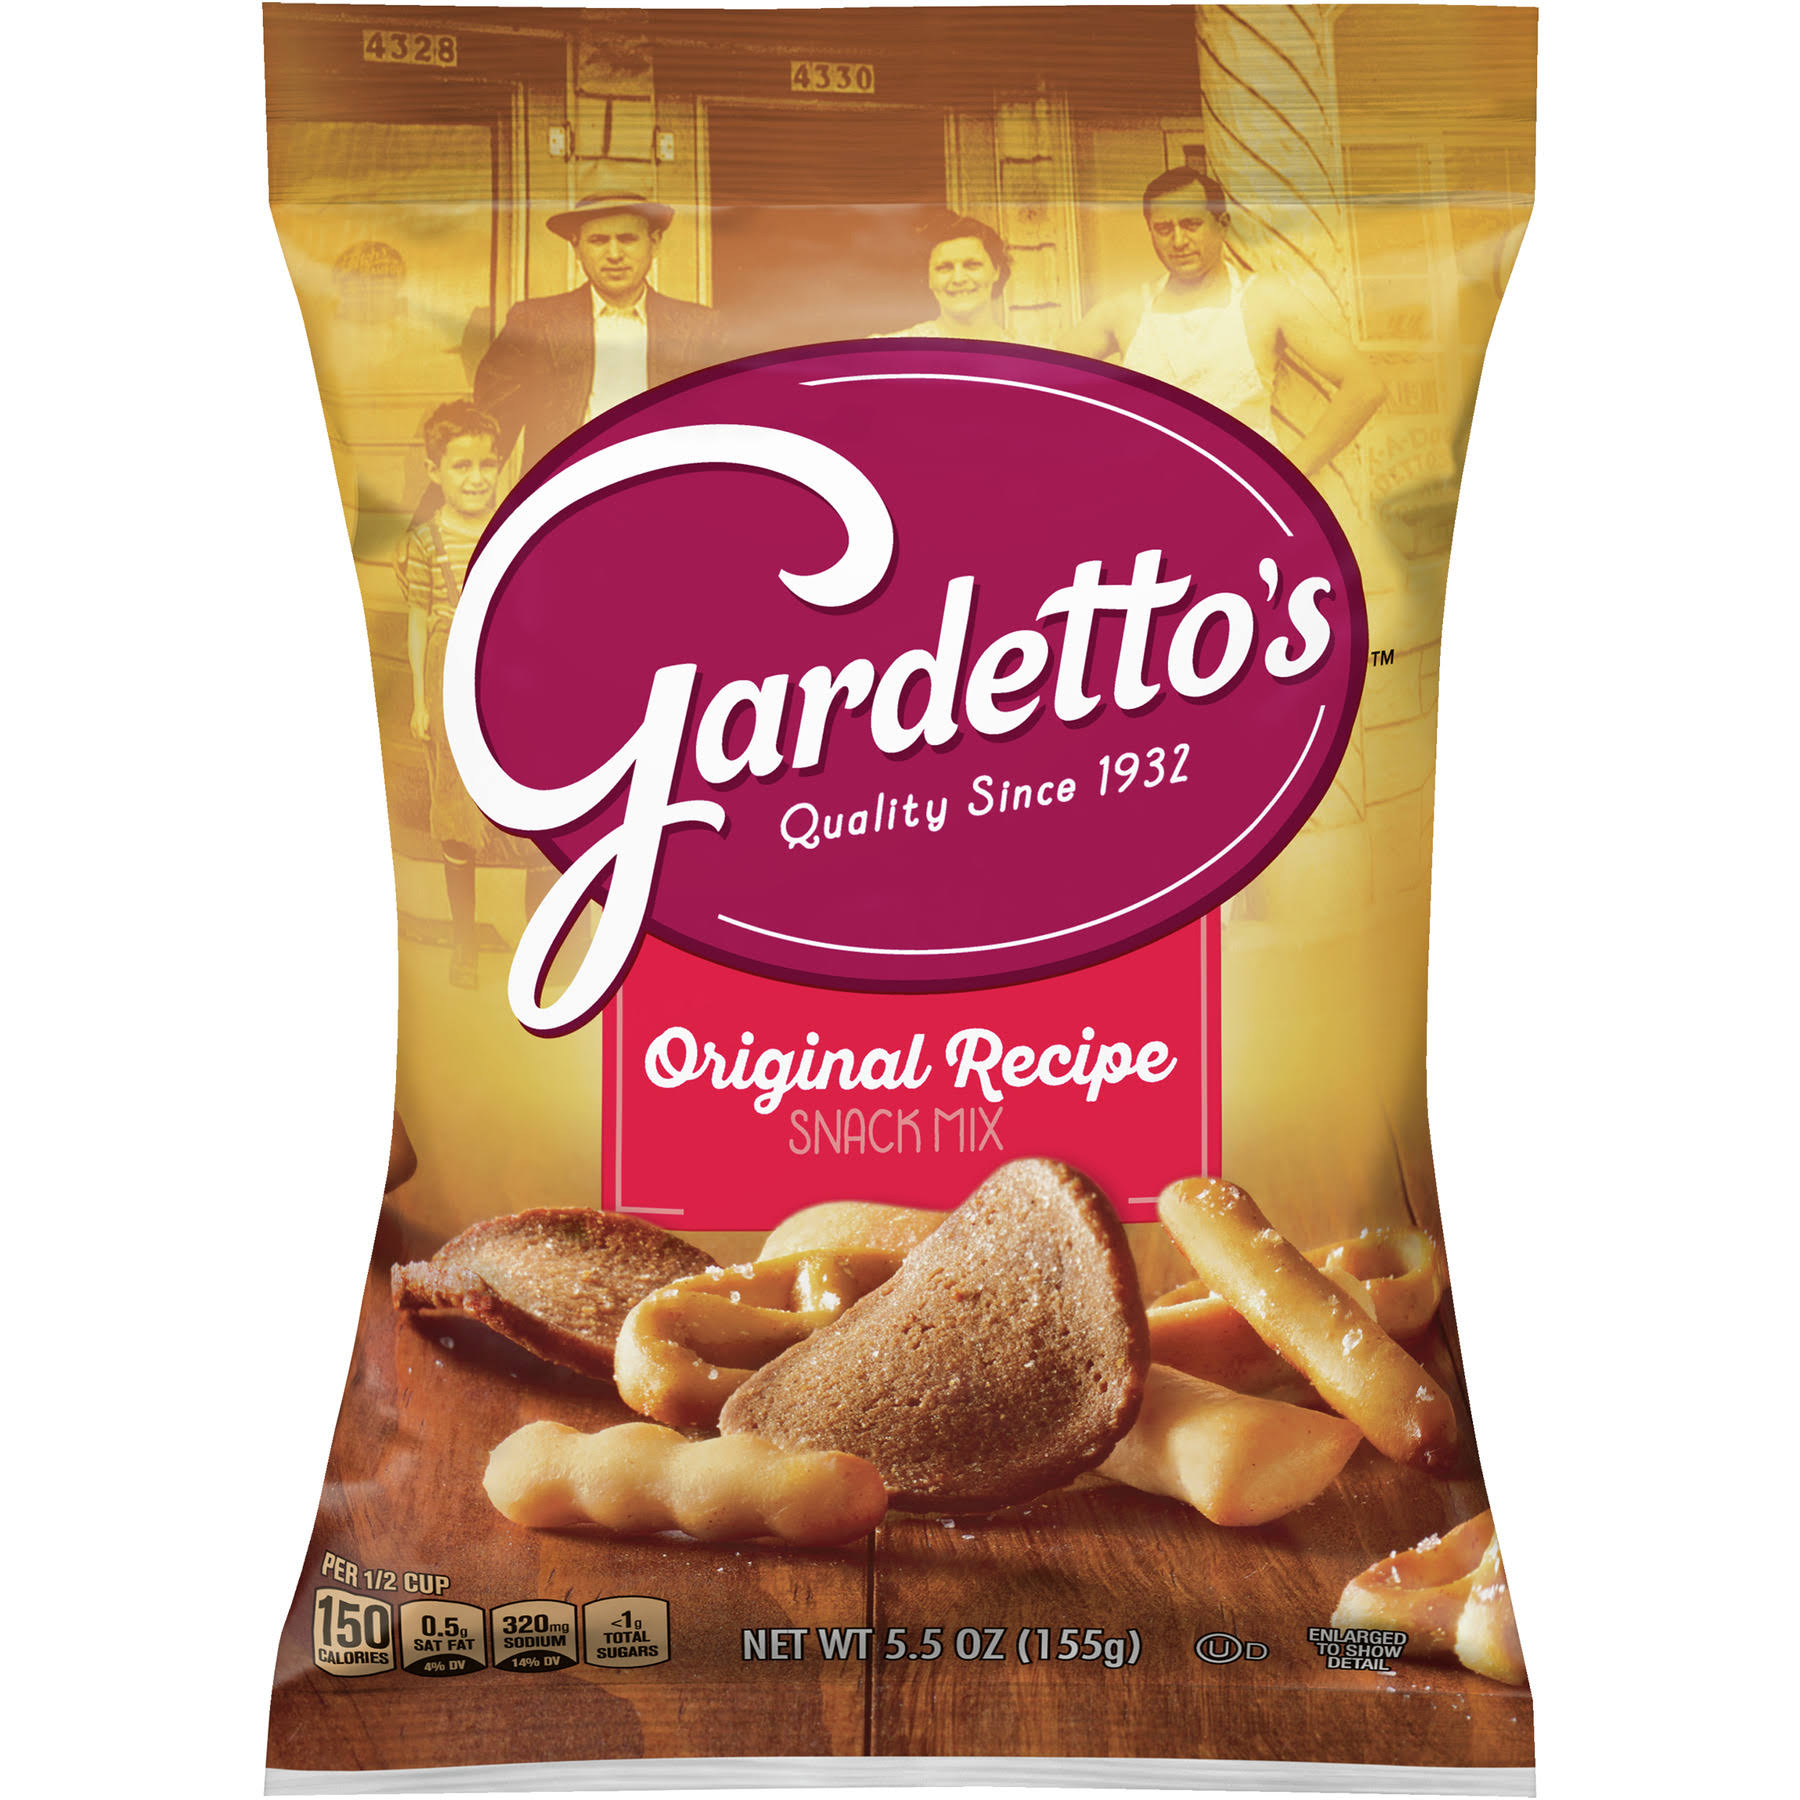 Gardetto's Snack Mix - Original Recipe, 5.5oz